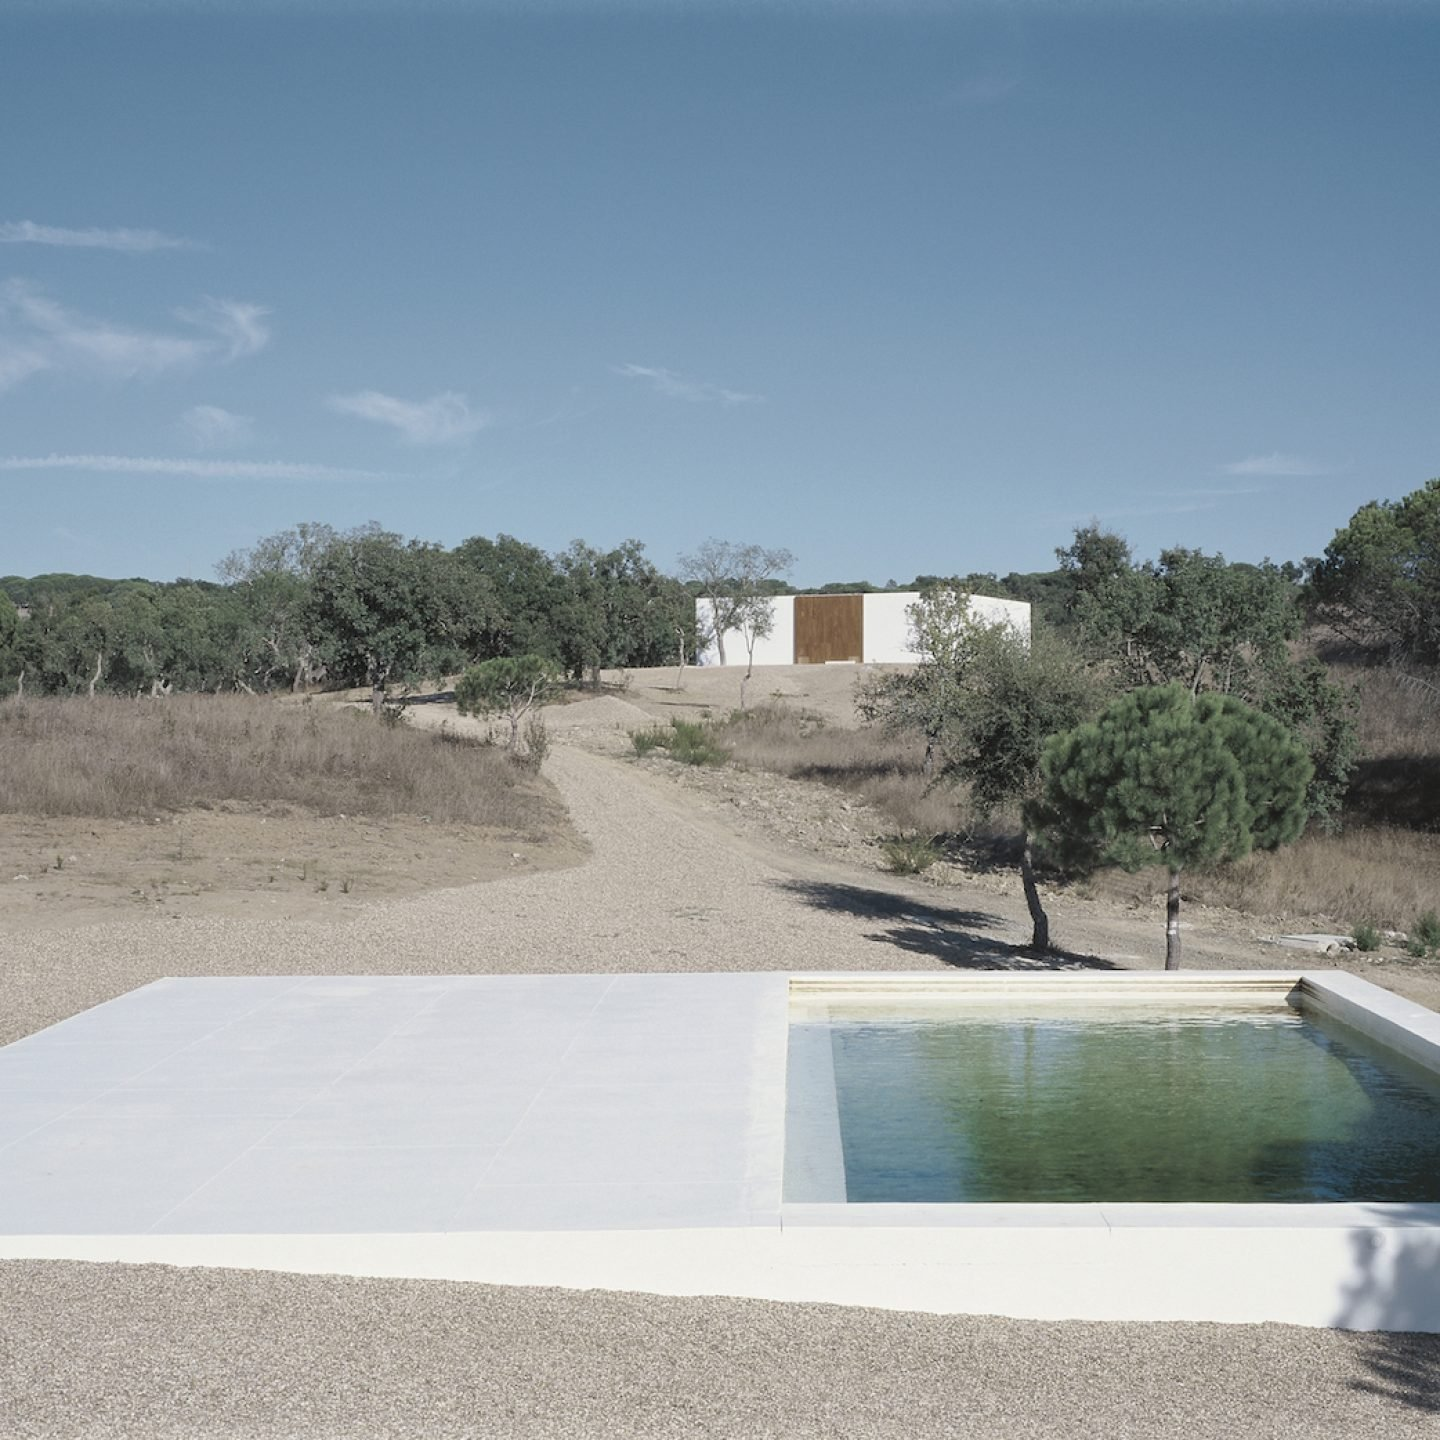 Aires_Mateus_Architecture_StoryImage